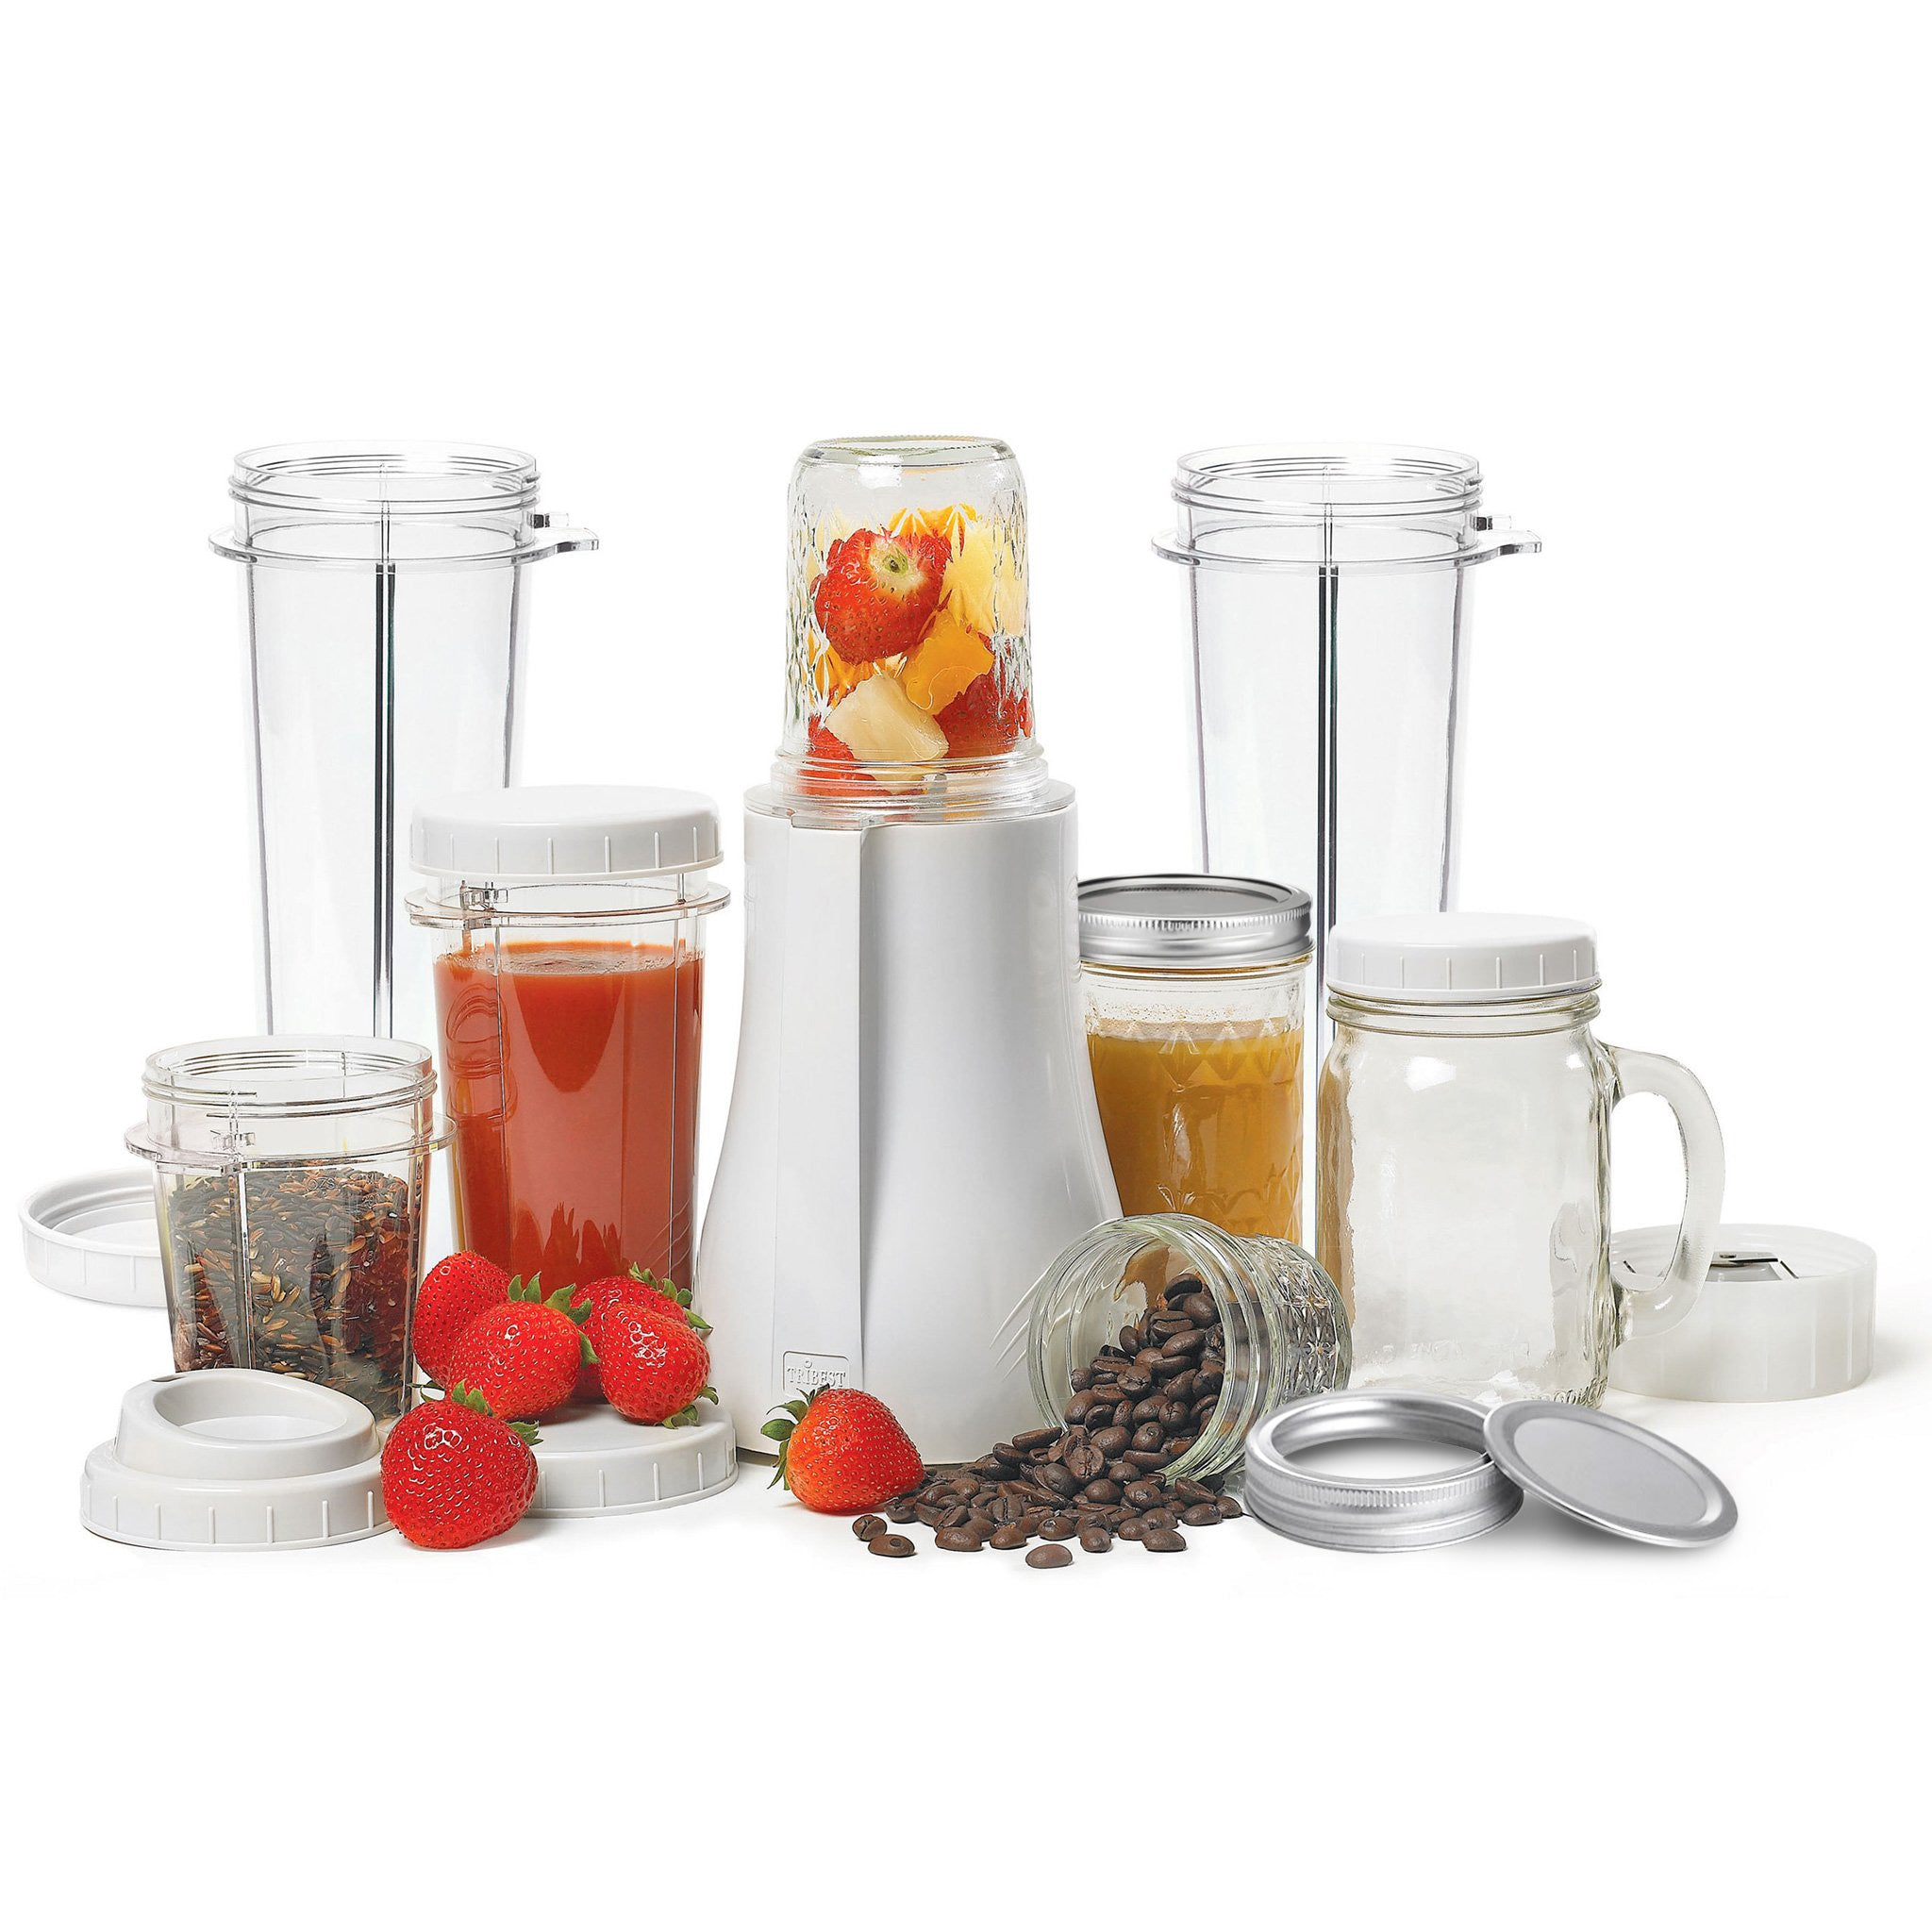 Personal Blender Original Single-Serving Blender (19-Piece Mason Jar Set with XL Cups) PB-350XL-A - Tribest